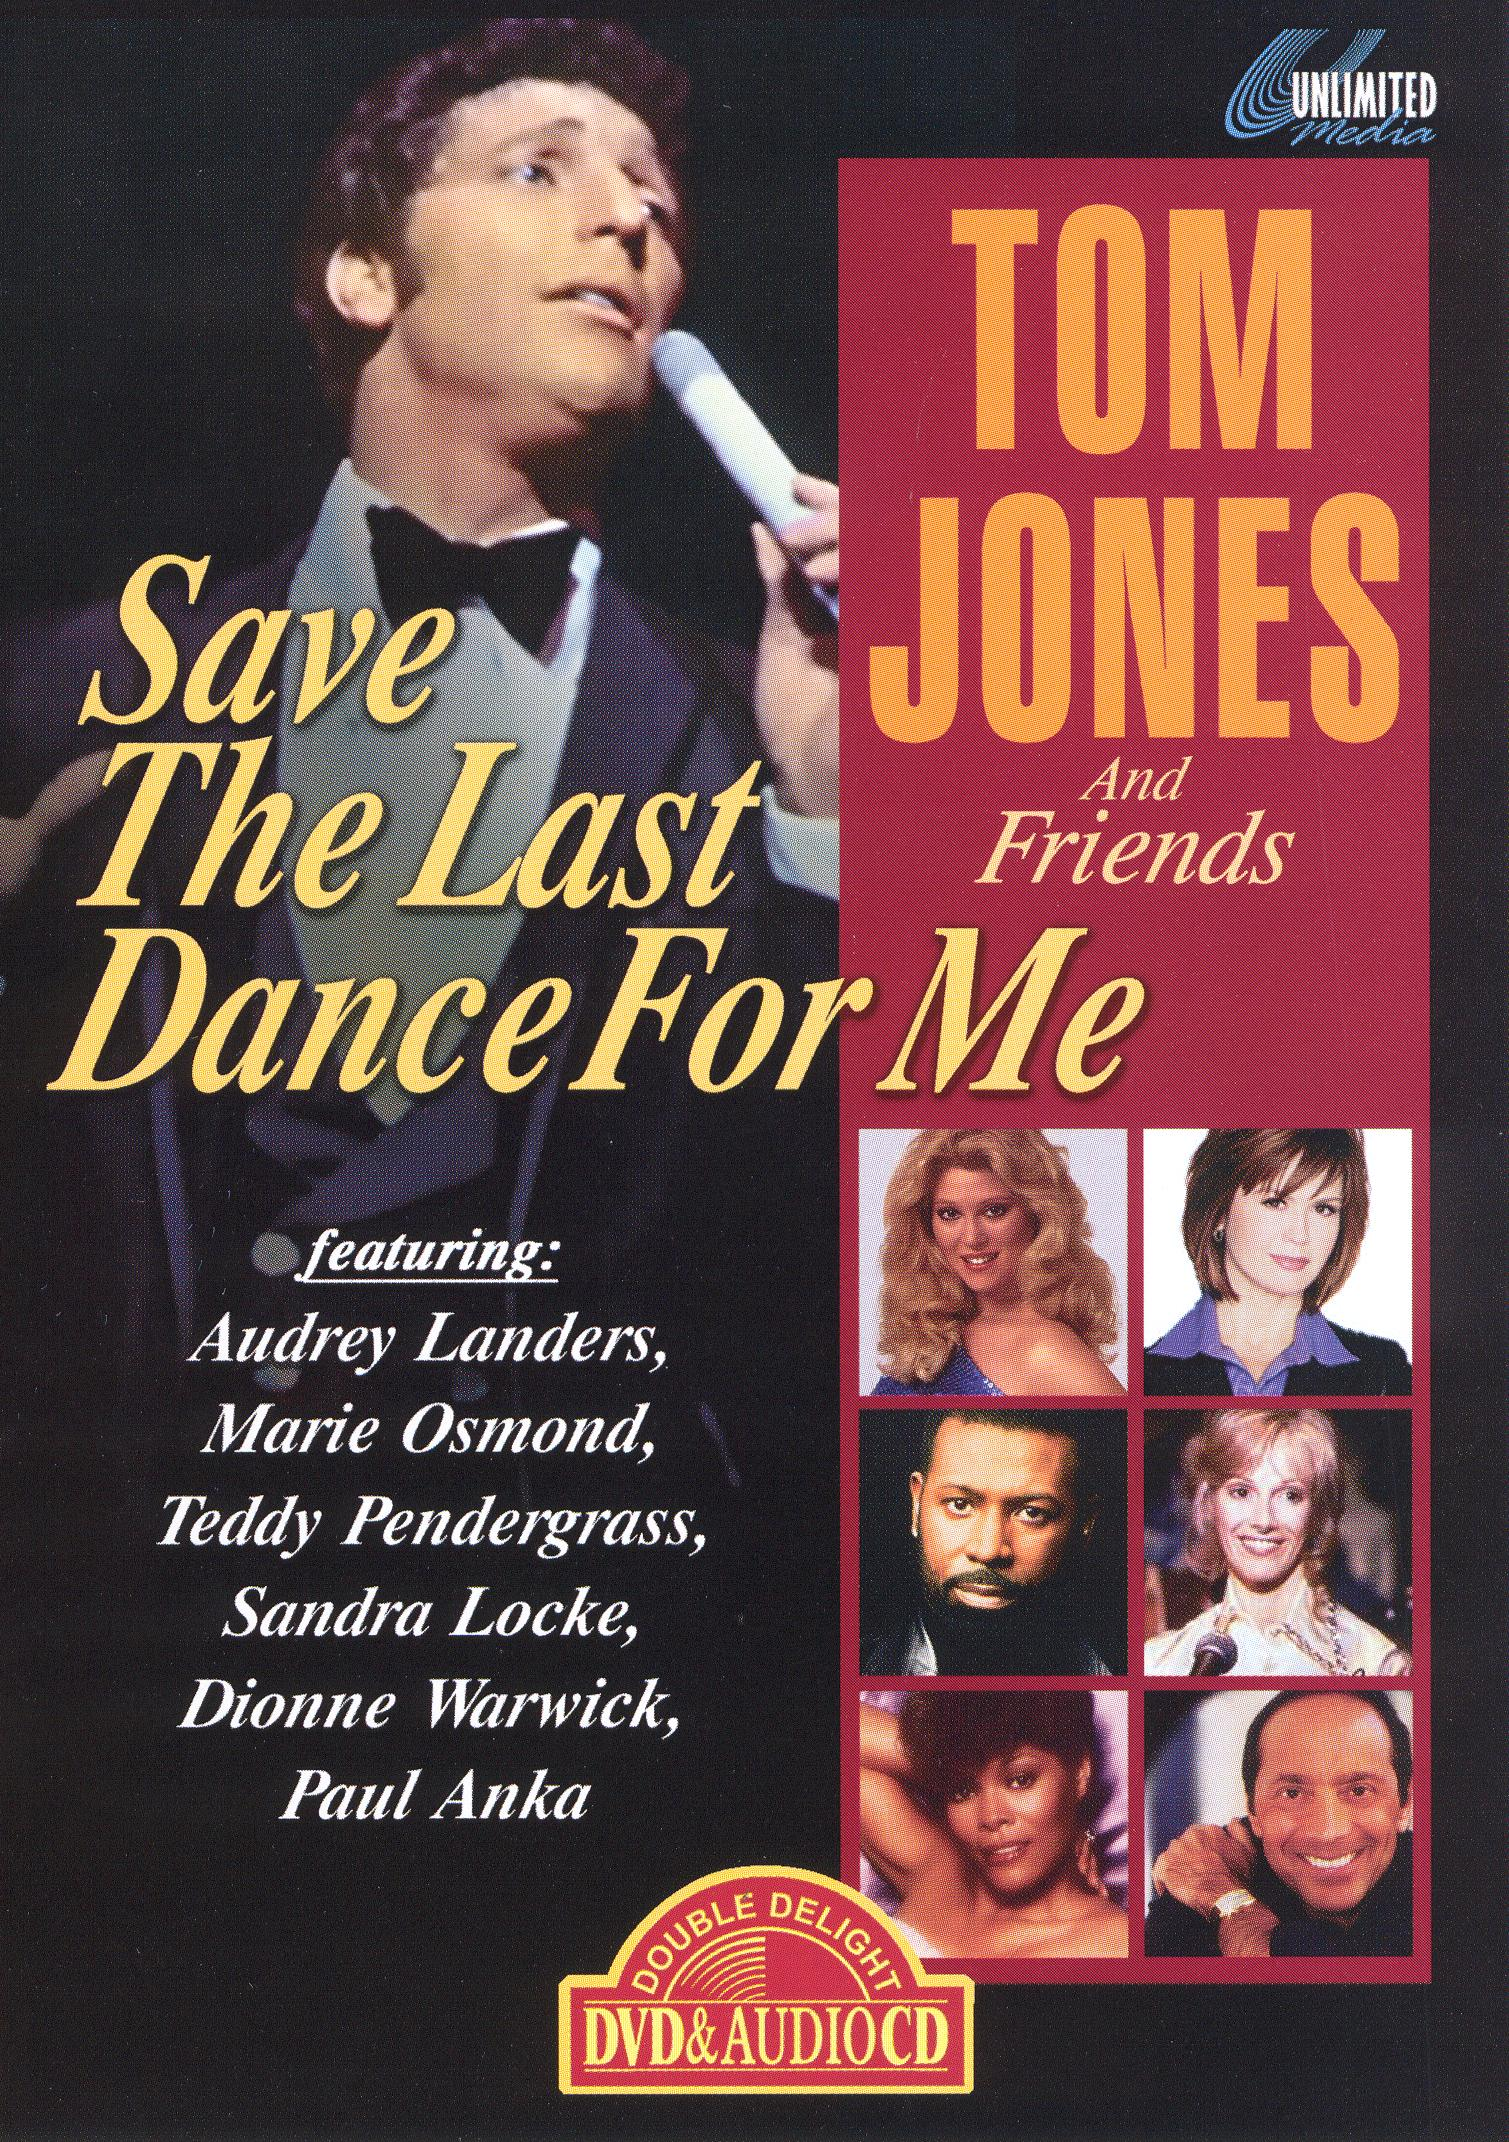 Tom Jones, Vol. 3: Save the Last Dance For Me